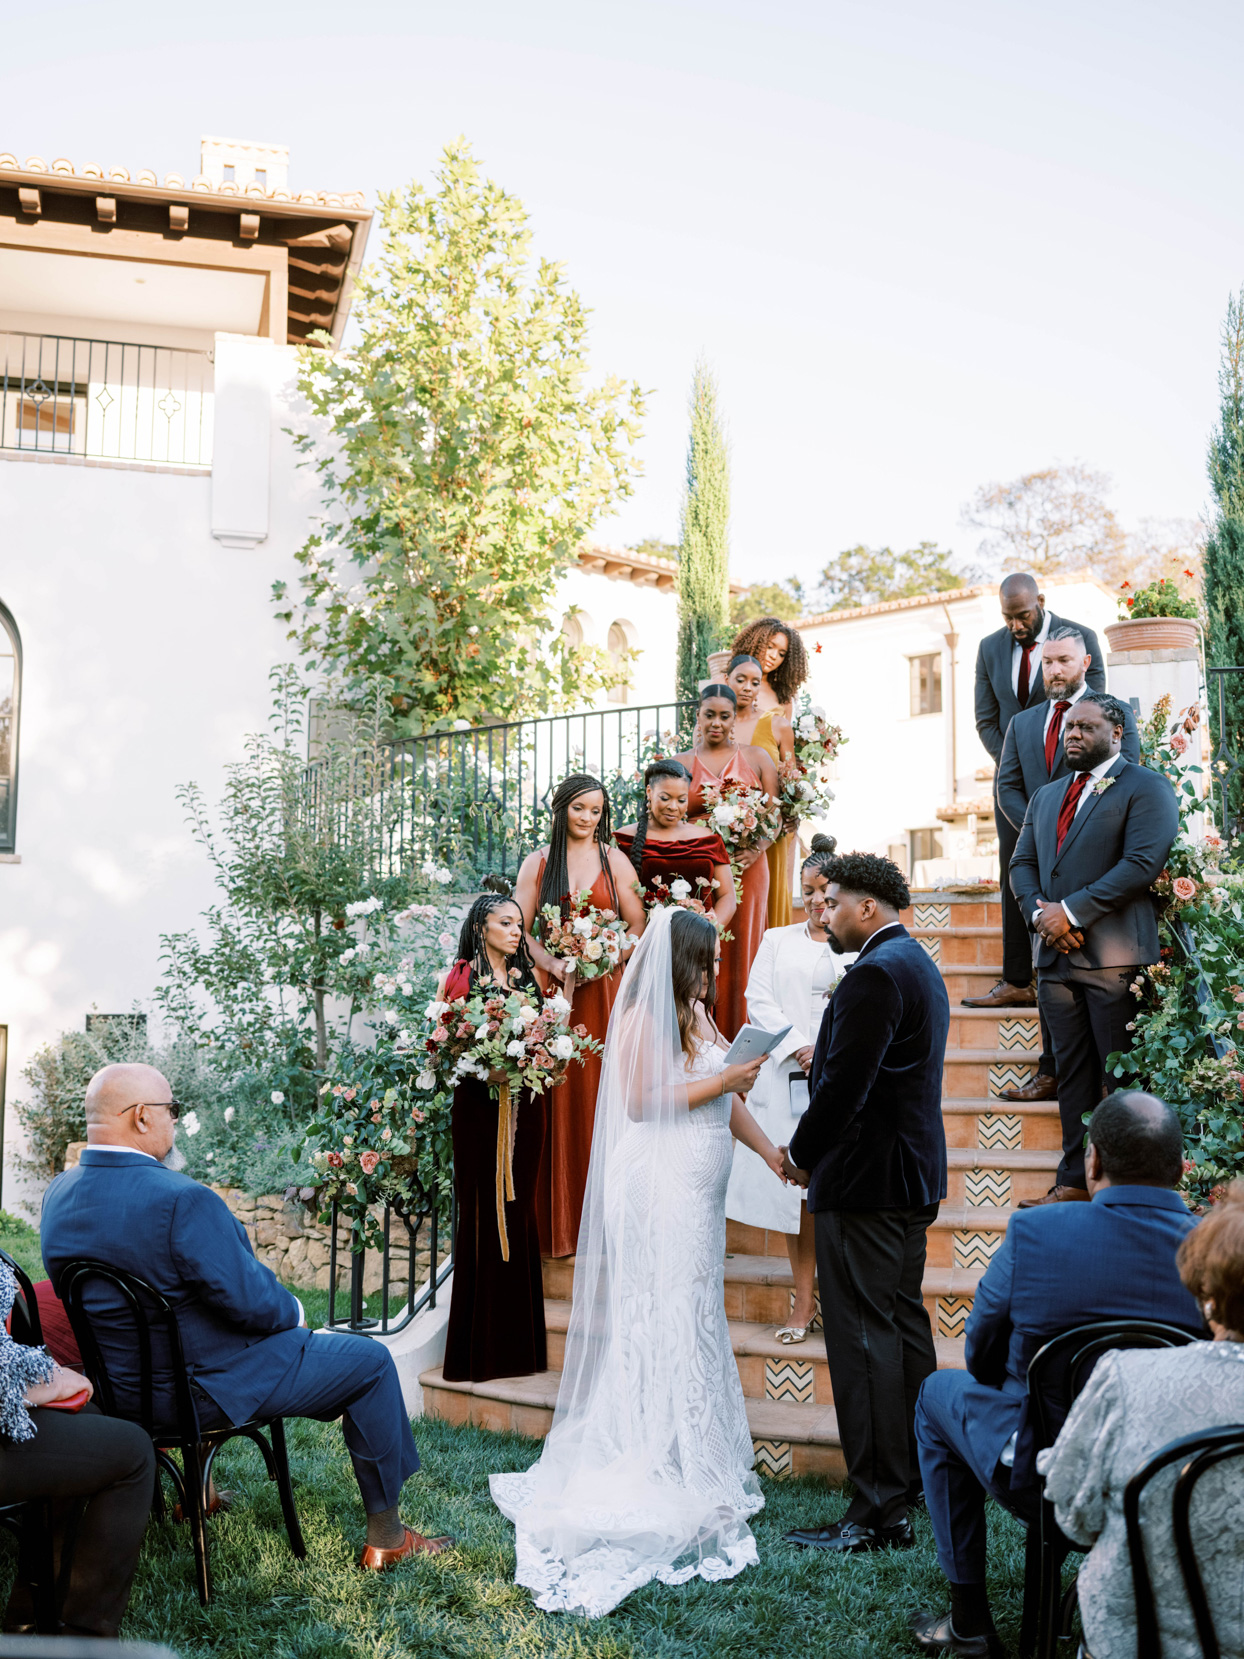 couple exchanging vows for small ceremony with wedding party standing on stairs above